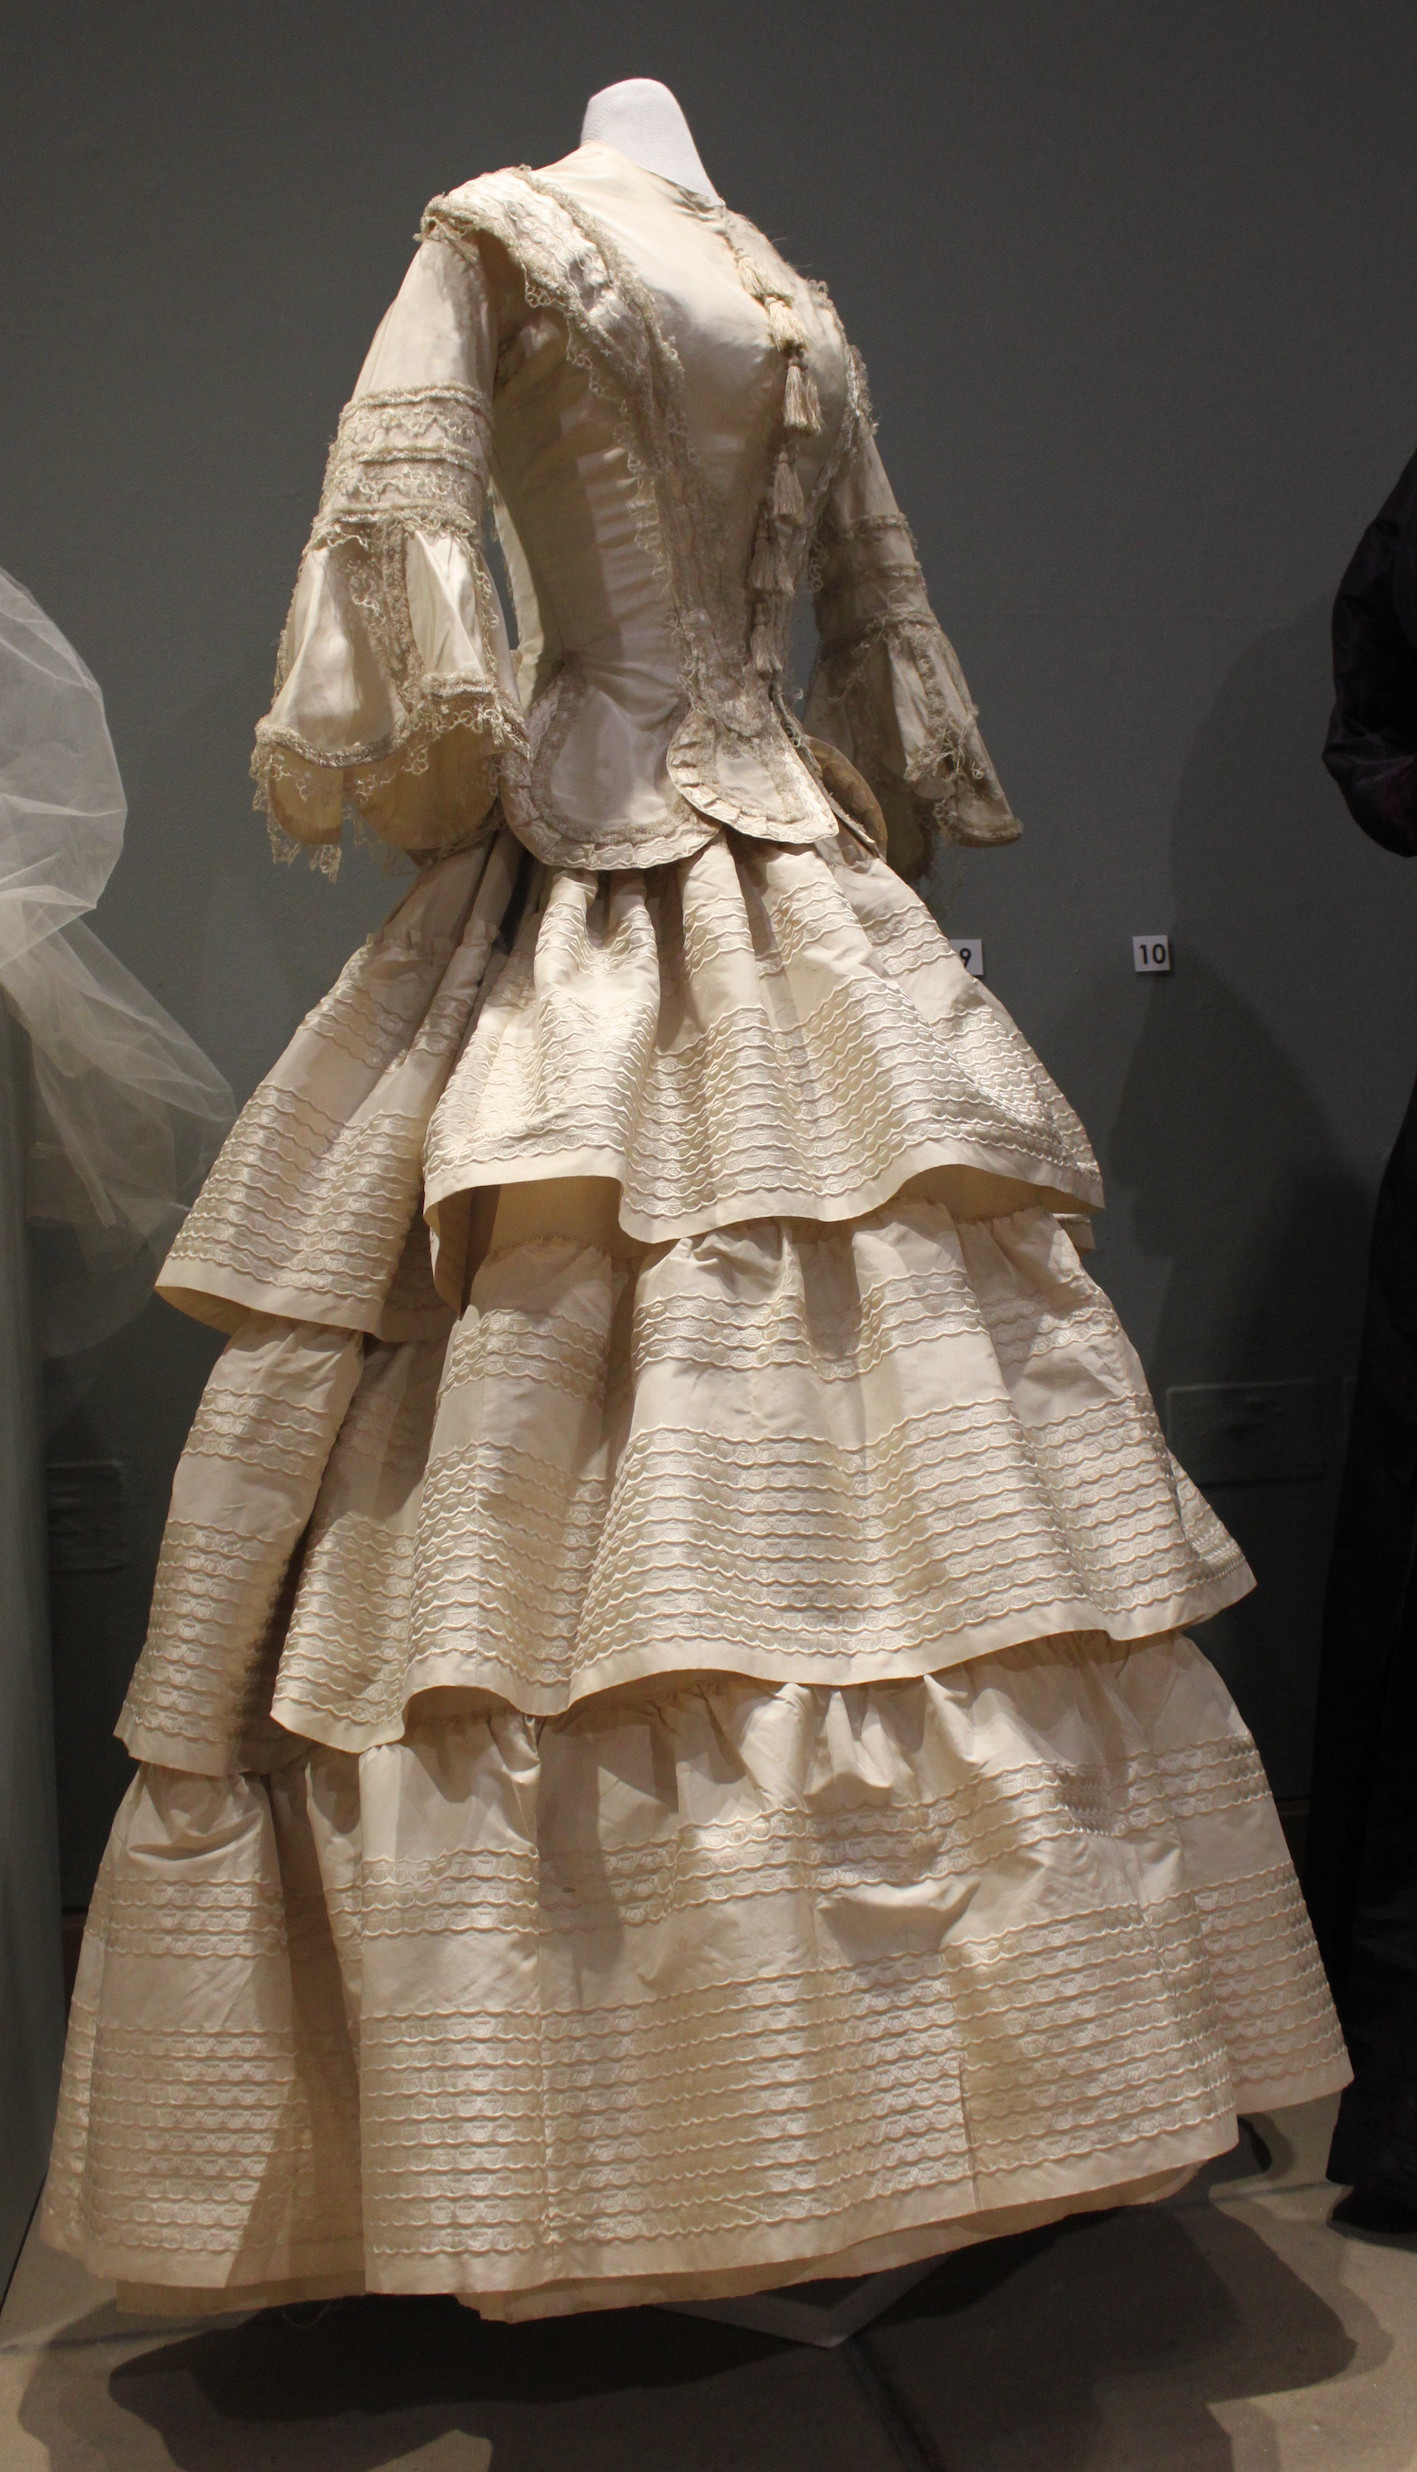 An Exhibition Of Wedding Dresses Dating From The 1820s To 1960s Has Opened In Art Gallery At Ryedale Folk Museum: 1820s Wedding Dress Box At Websimilar.org